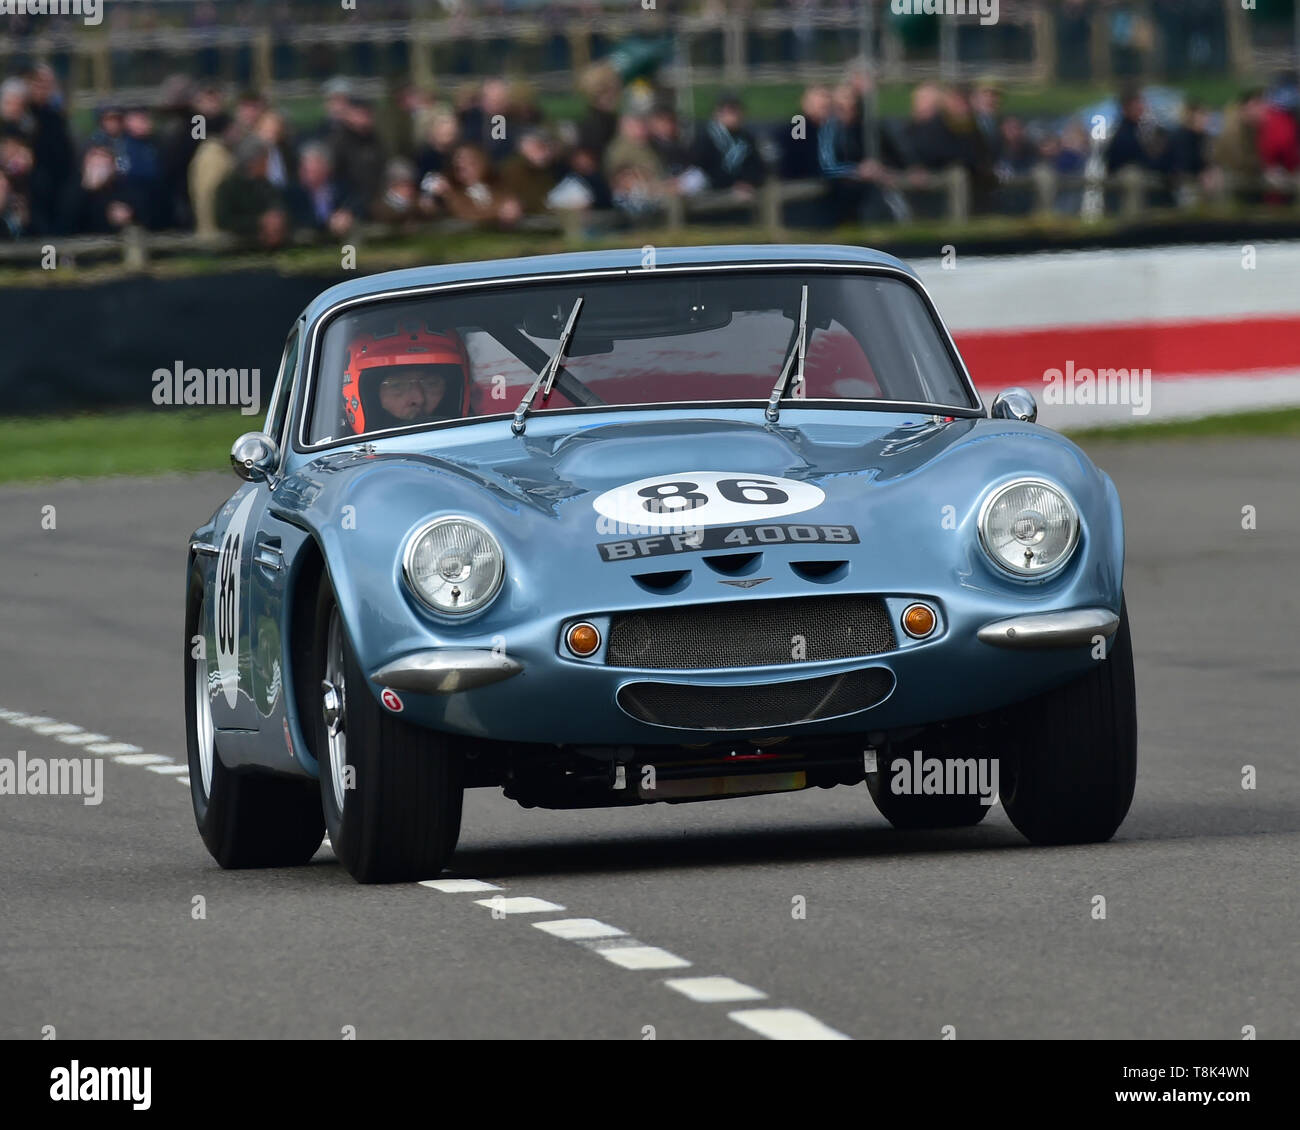 Mike Whitaker, Mike Jordan, TVR Griffith, Graham Hill Trophy, Closed cockpit GT cars, Prototype cars, Spirit of the RAC TT Races 1960-1964, 77th Membe - Stock Image